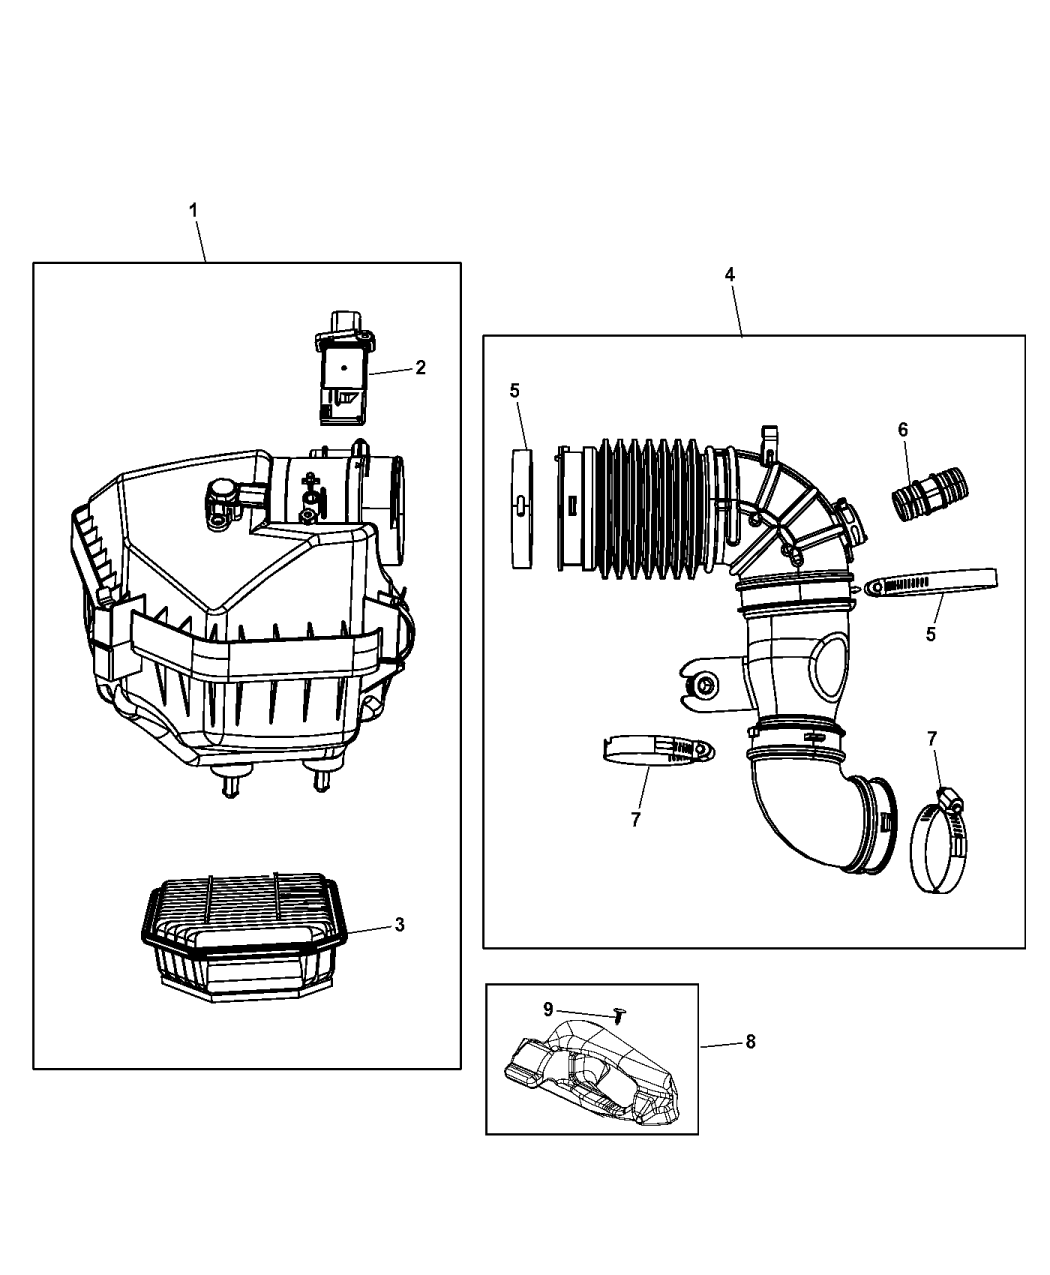 2015 jeep wrangler oem parts diagram